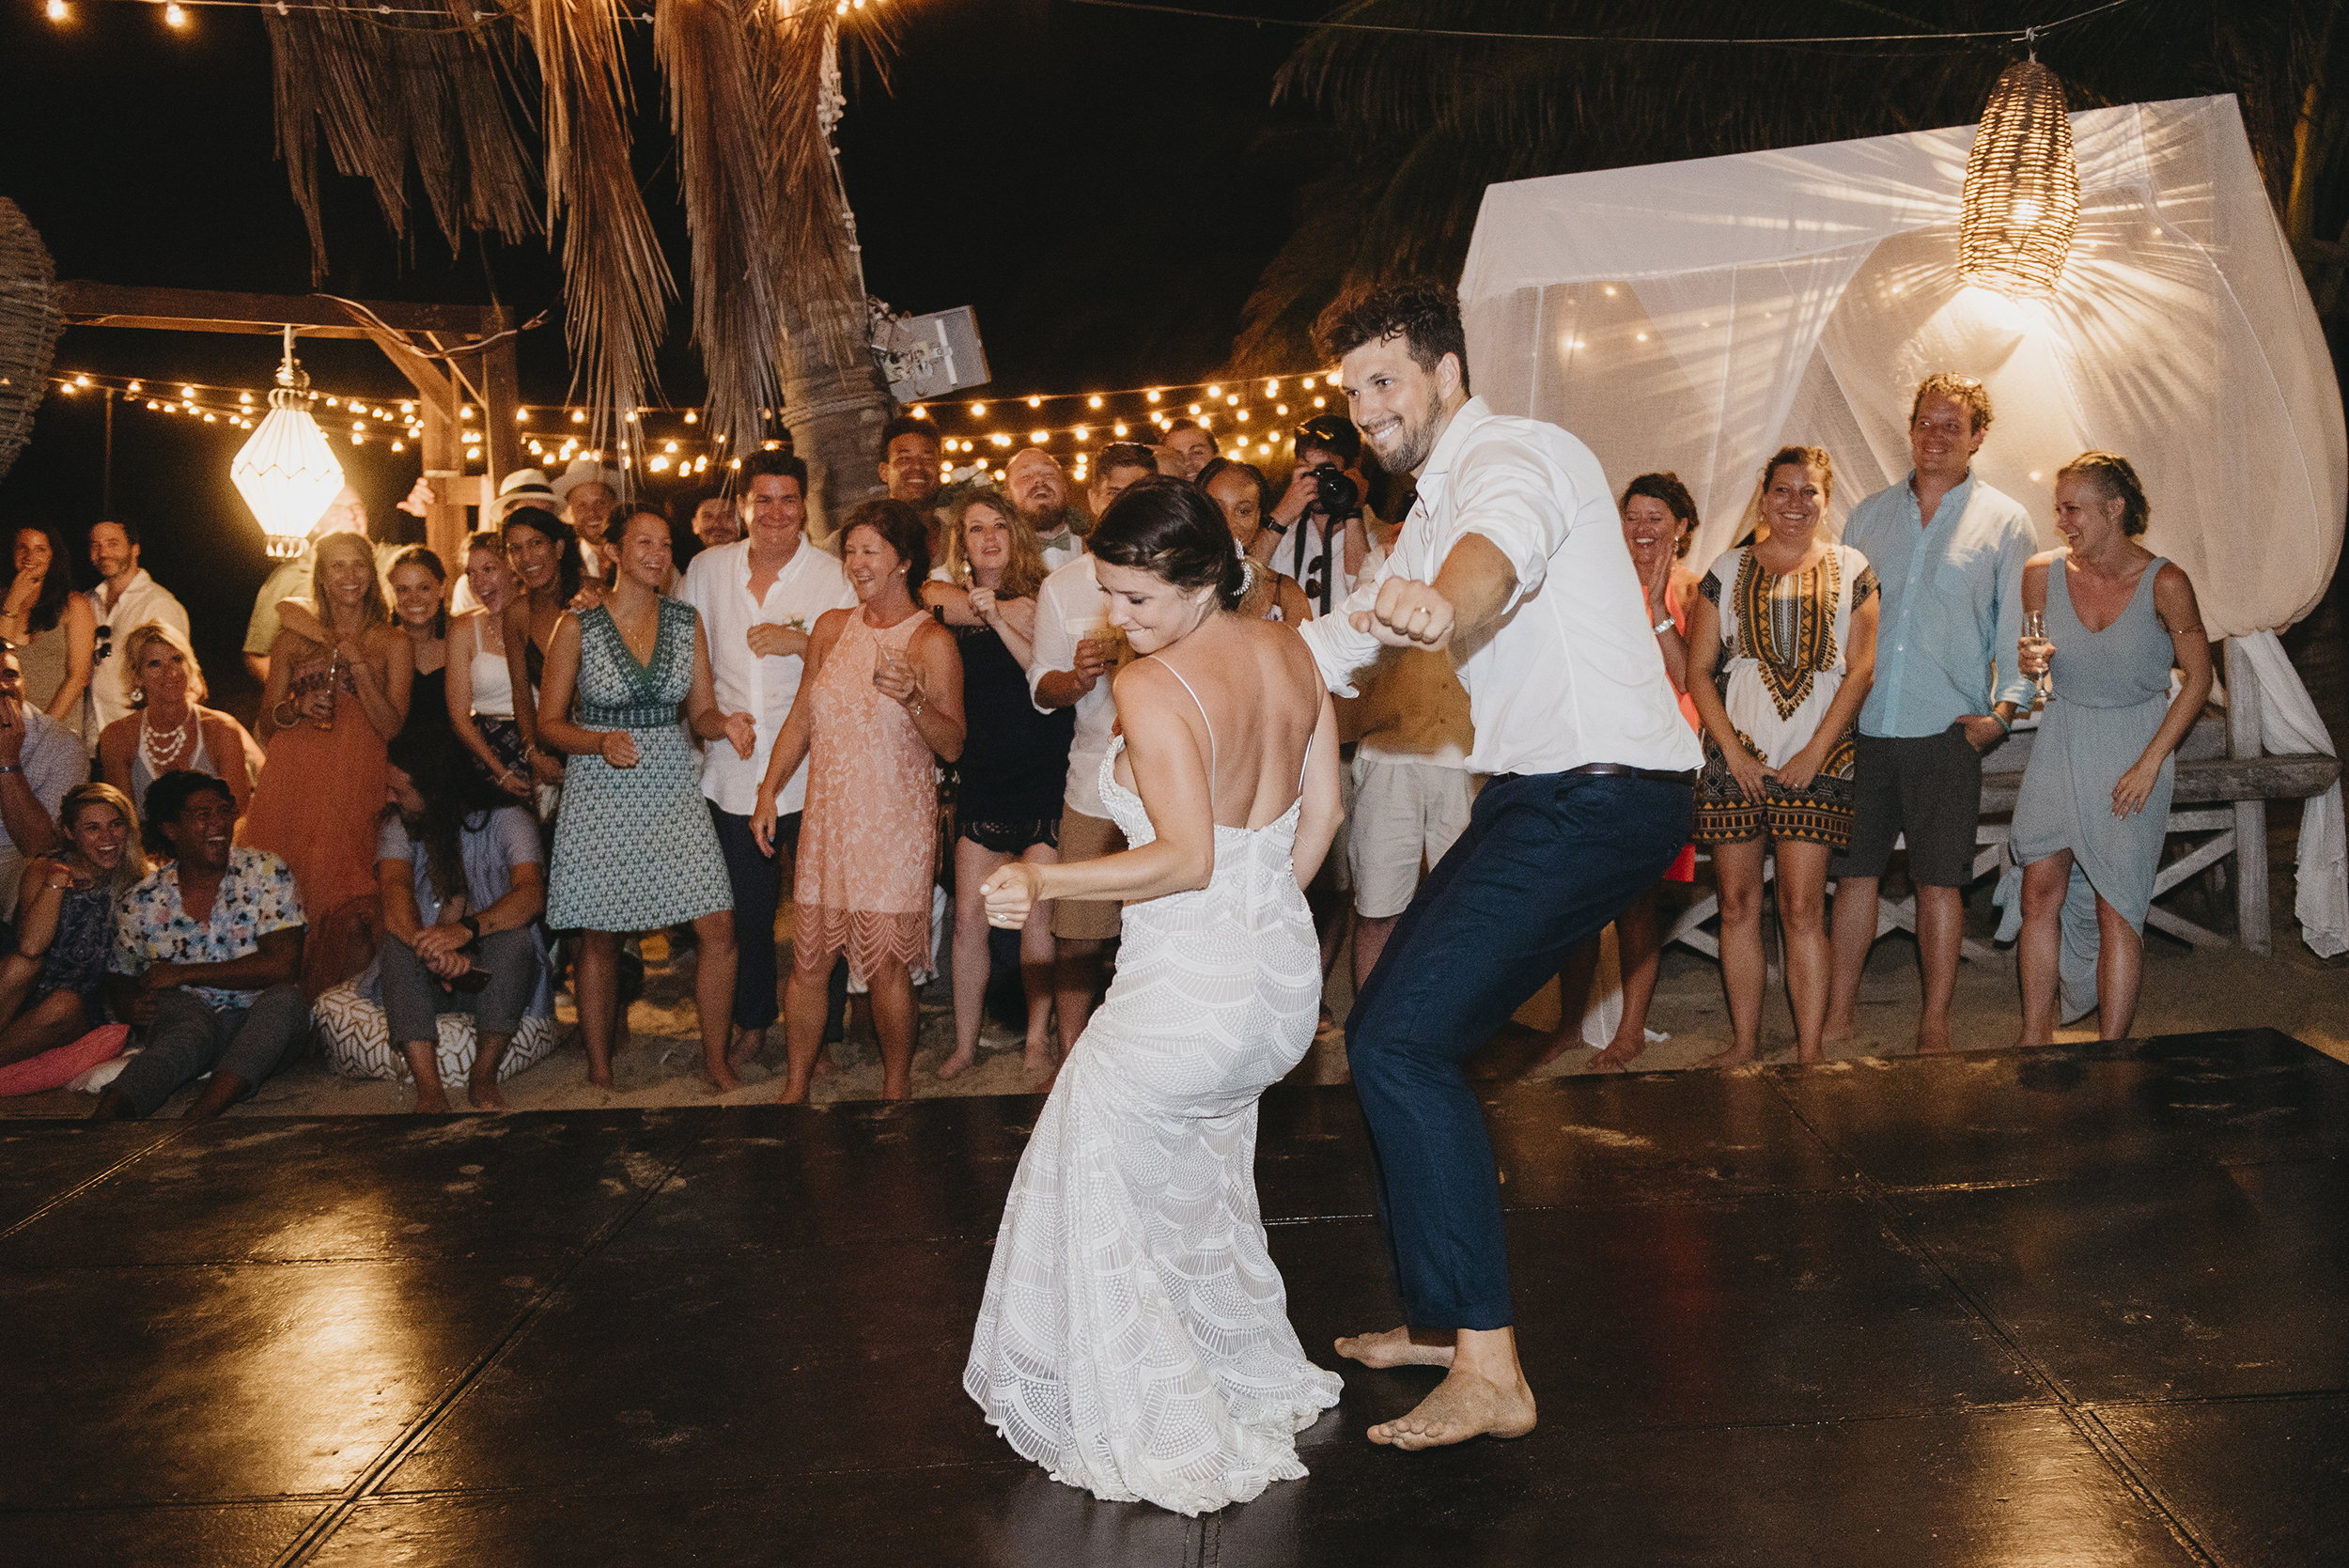 Colby-and-Jess-Intimate-Destination-Wedding-Sayulita-Puerto-Vallarta-Mexico828.jpg